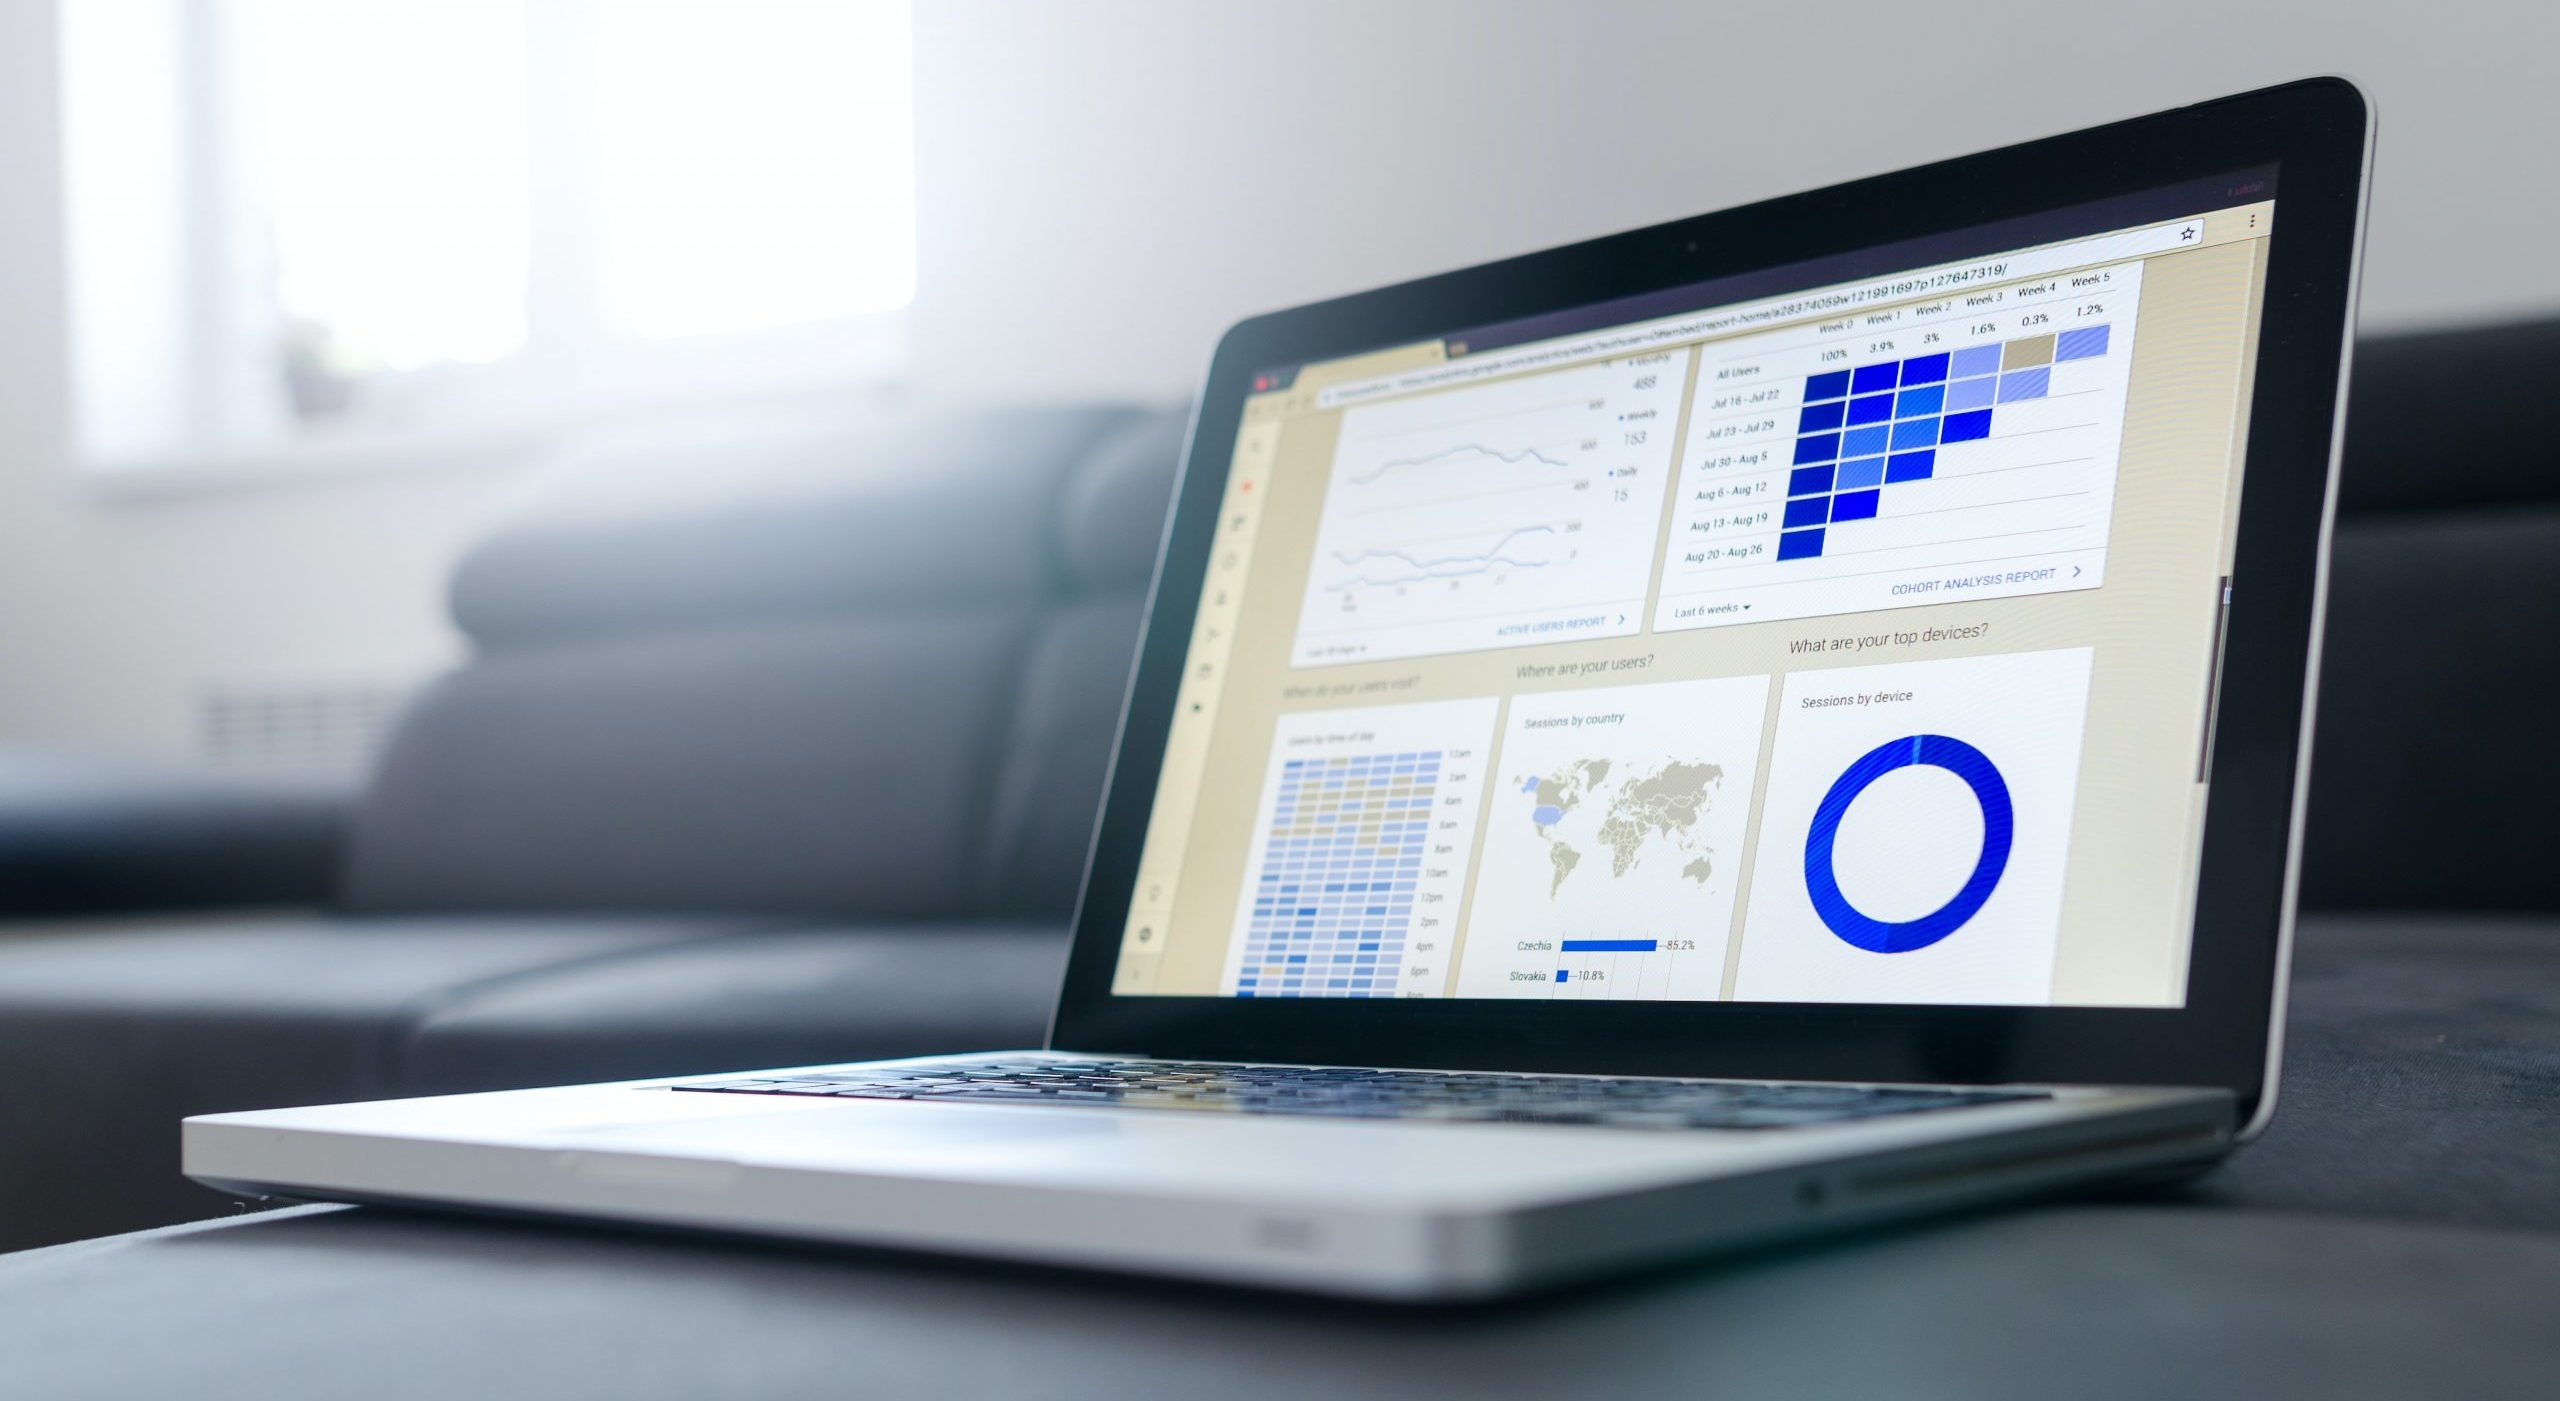 Image of laptop with data analytics on the screen